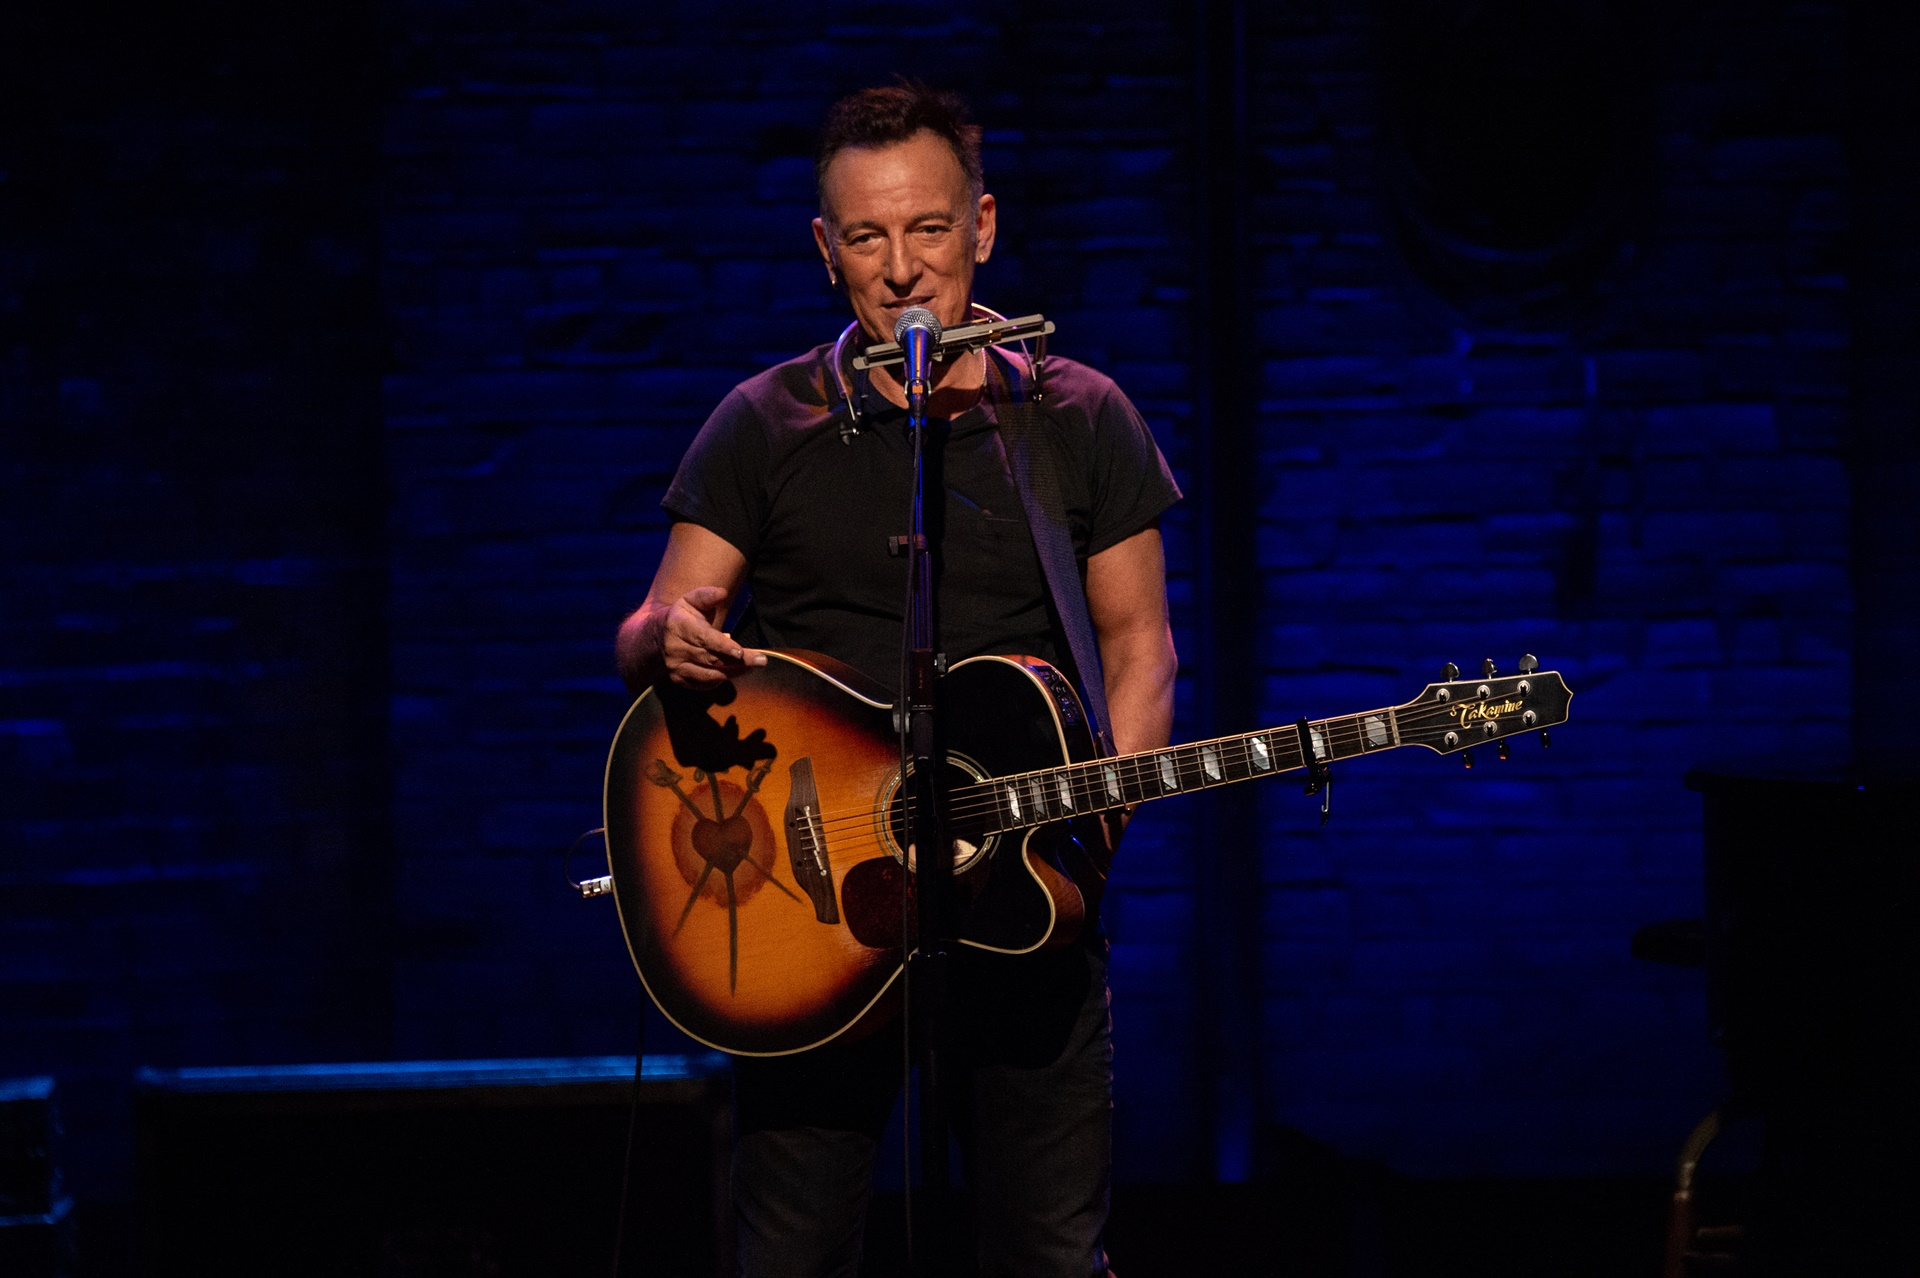 Springsteen on Broadway: Bruce Springsteen sul palcoscenico